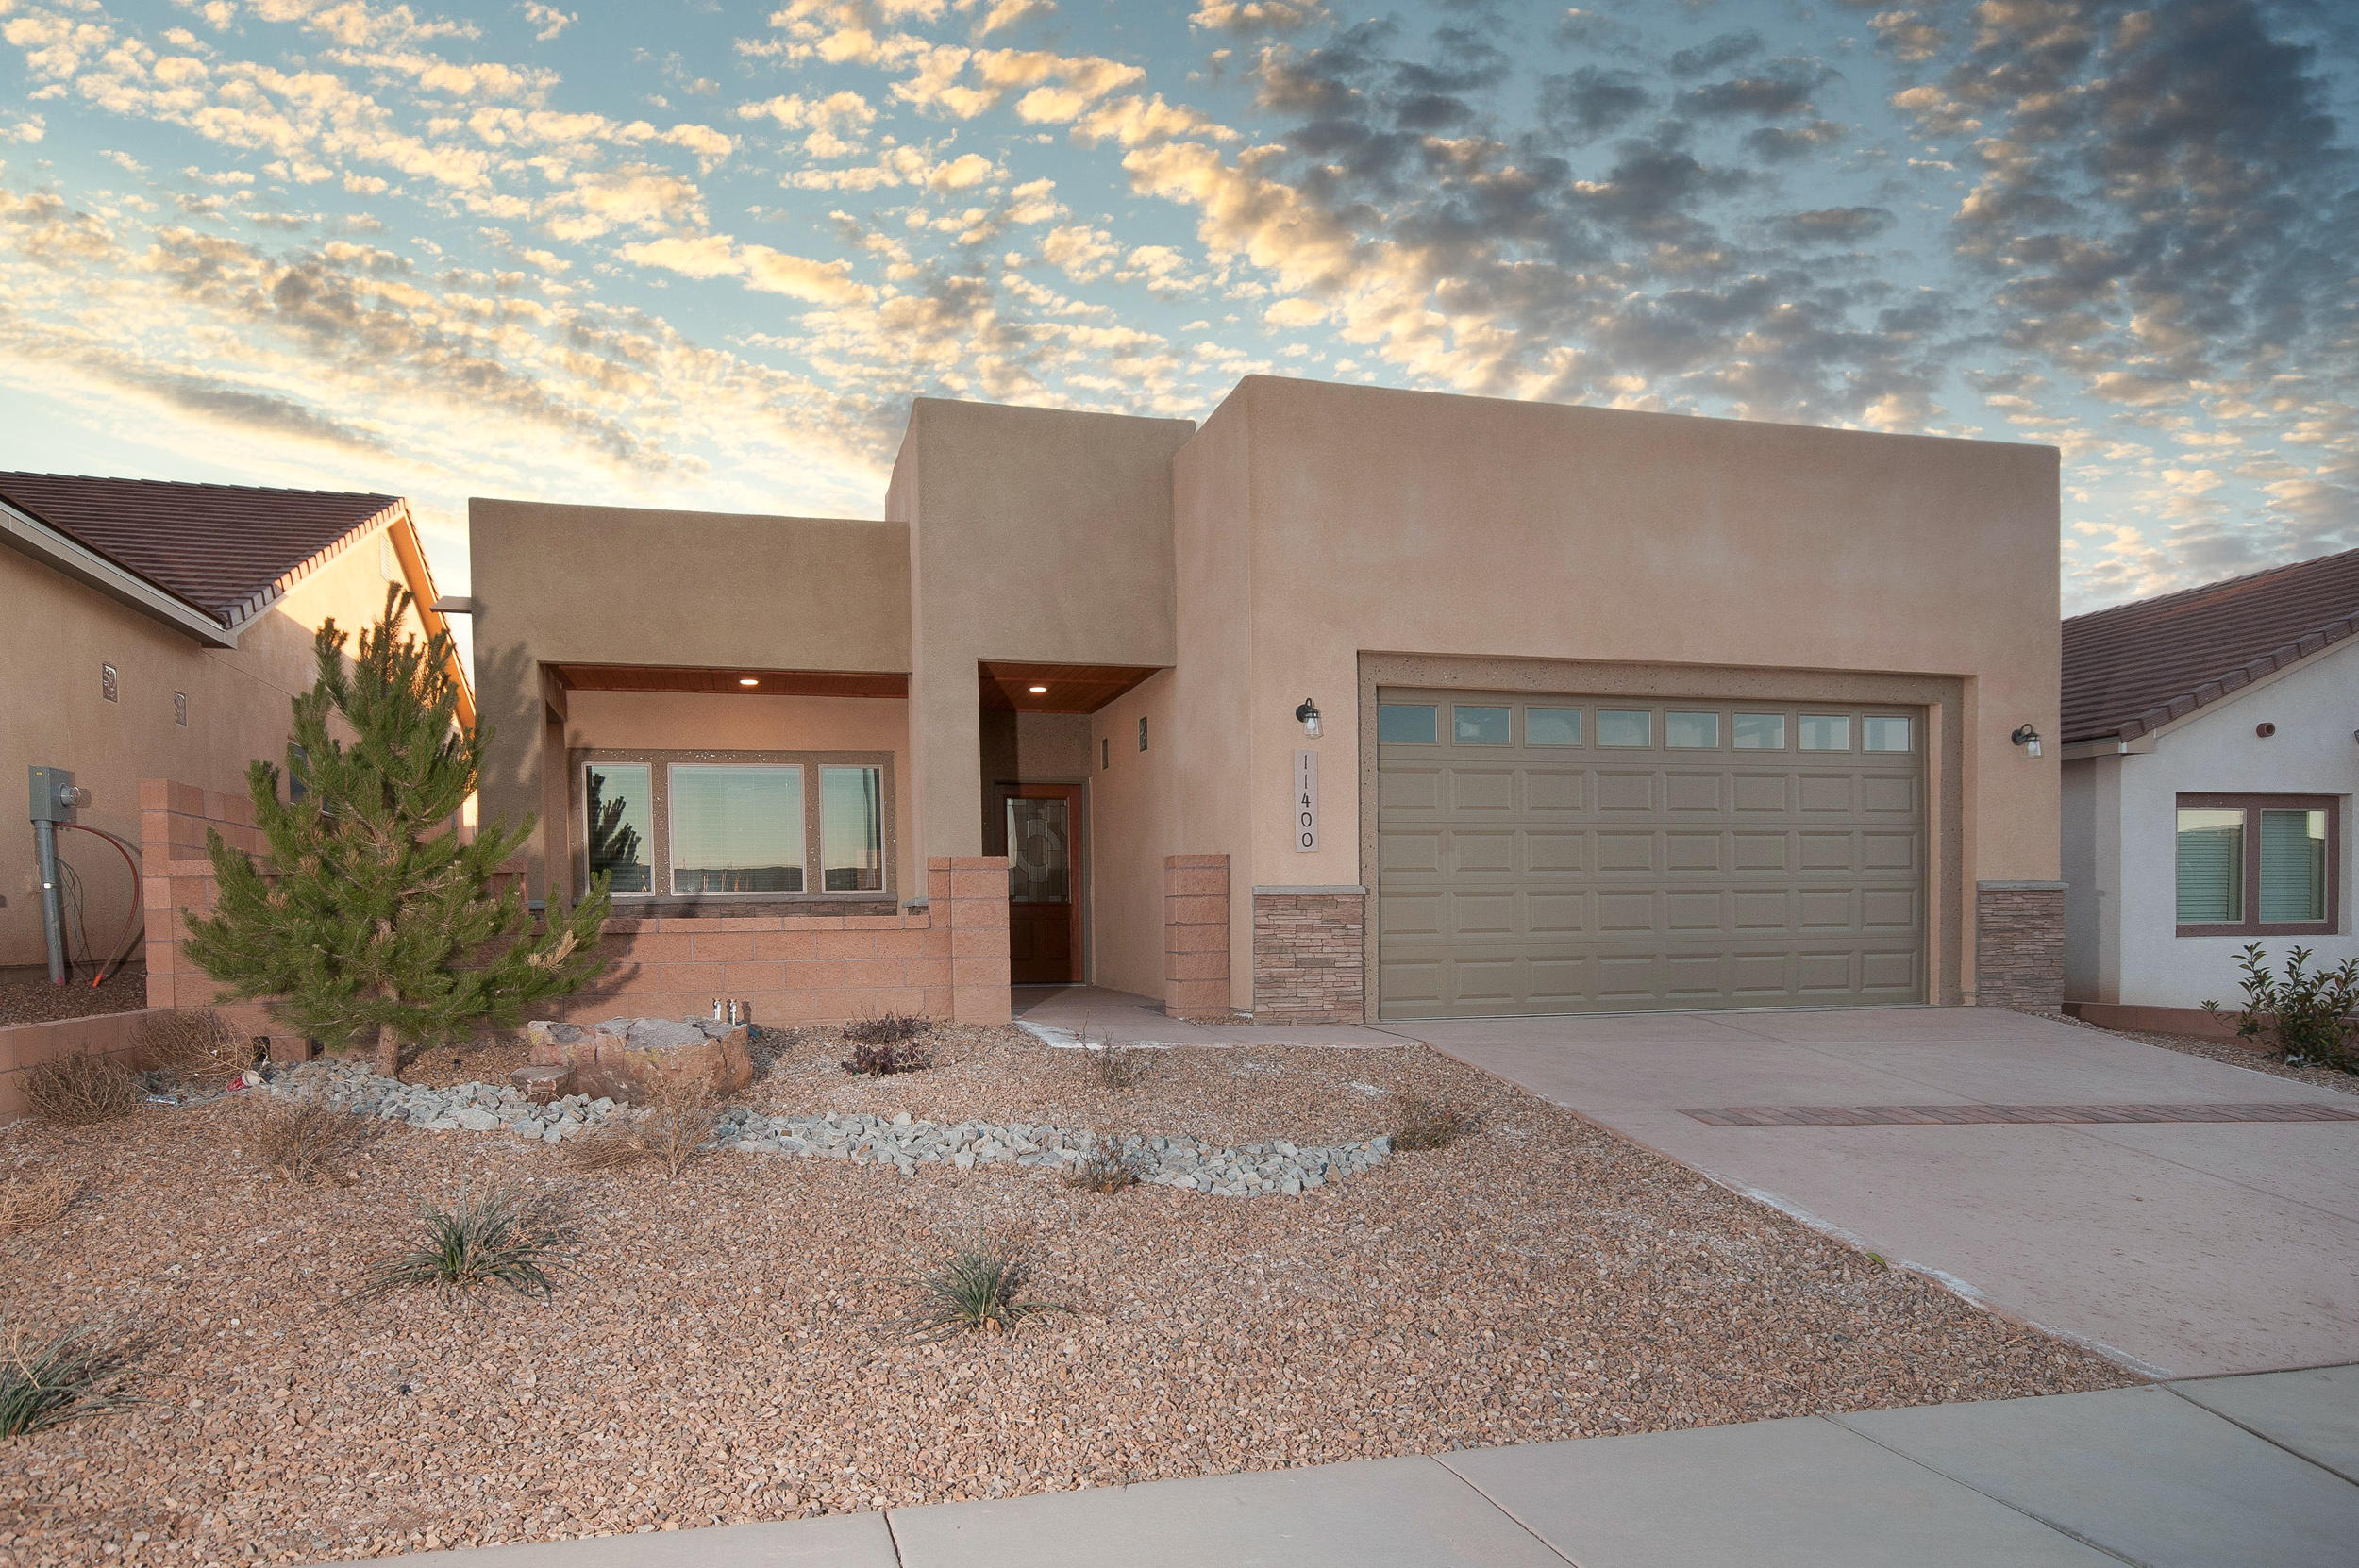 Nice Courtyard Entry into this Beautiful New Constuction Home Complete with Easy Maintenance Front & Backyard Landscaping & Window Coverings Thru-Out. Enjoy Cozy Evenings by the Pretty Staked Stone Gas Log Fireplace In the Living/Dining Rm Combo, Pretty Kitchen with Breakfast Bar, Quartz Countertops, Stainless Steel Appliances, Pantry, Tile Flooring and Family or Formal Dining Room.  Check Out the Large Mastersuite with Walk-In Closet, Double Vanity, Granite C-Tops, Large Shower w/Tile Surround,Pretty Tile Flooring. Covered Front and Back Patio's To Enjoy the Warmer Weather. Finished Garage w/Epoxy Painted Floor. It's Built Green to Emerald Level for Huge Utility Savings. Refrigerated Air, Low-E Windows, High Efficency Furnace & So Much More